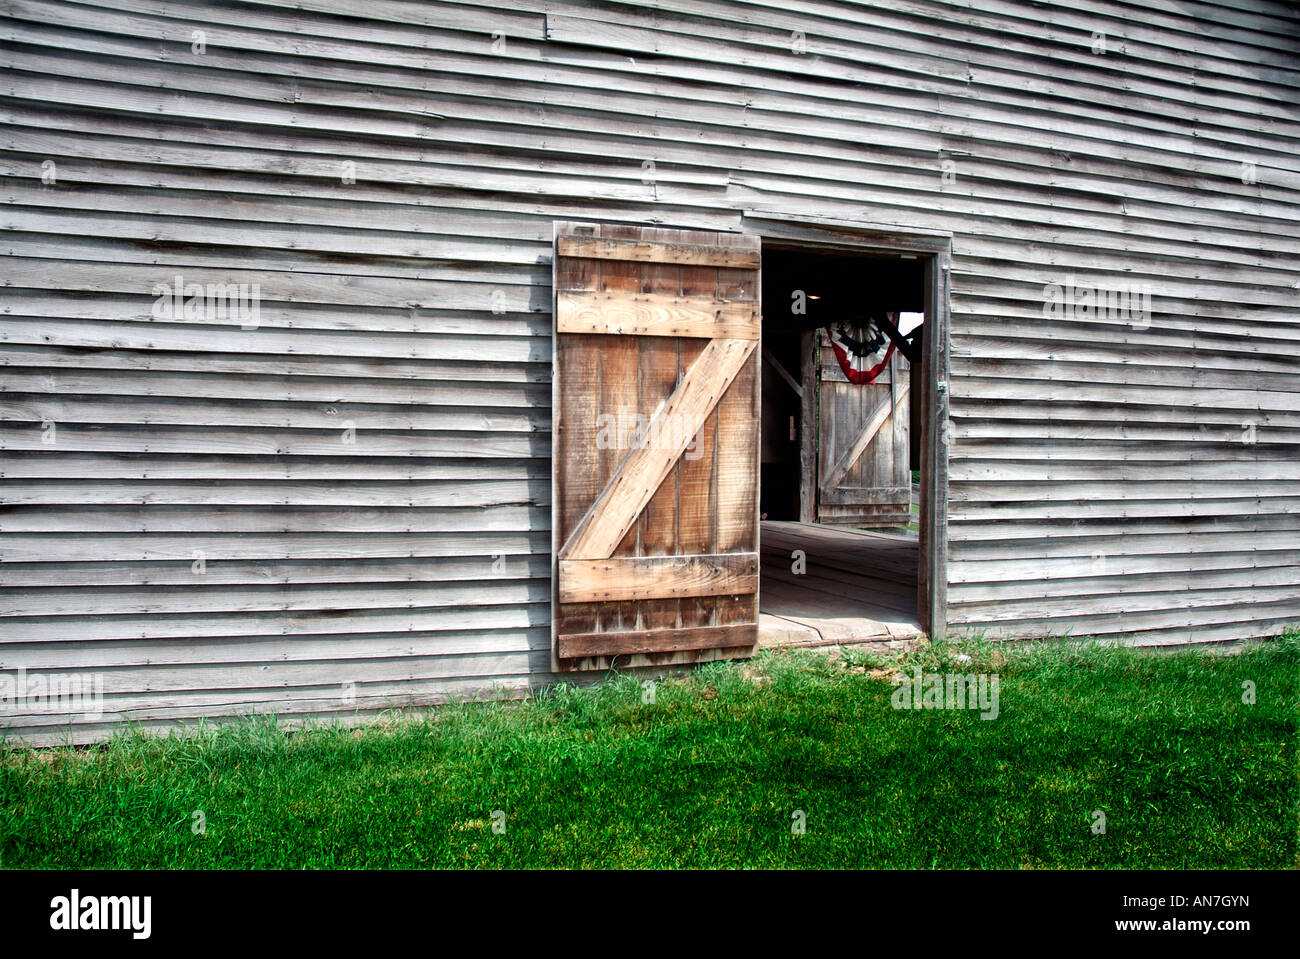 Old weather-beaten barn. A door is open, allowing the viewer to see the red, white & blue bunting hanging in - Stock Image